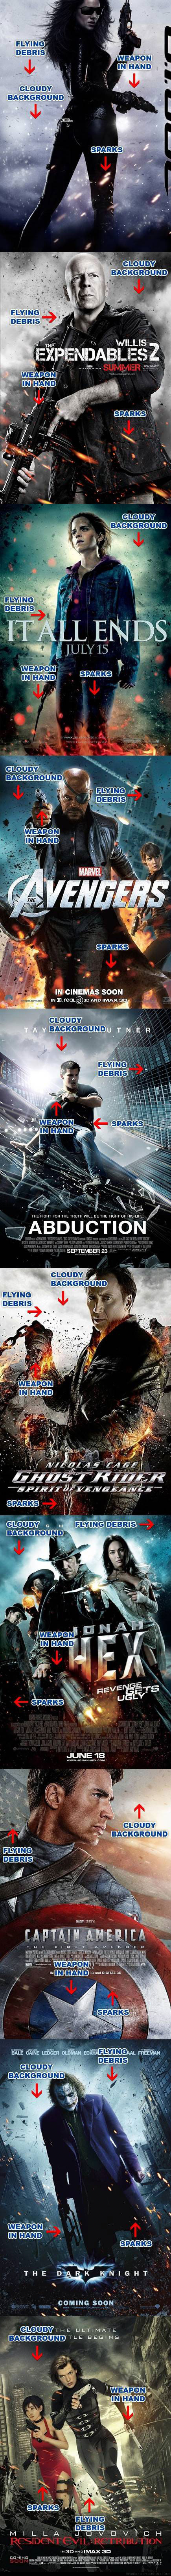 trend, movie poster, cloud, debris, sparks, action, adventure, fantasy